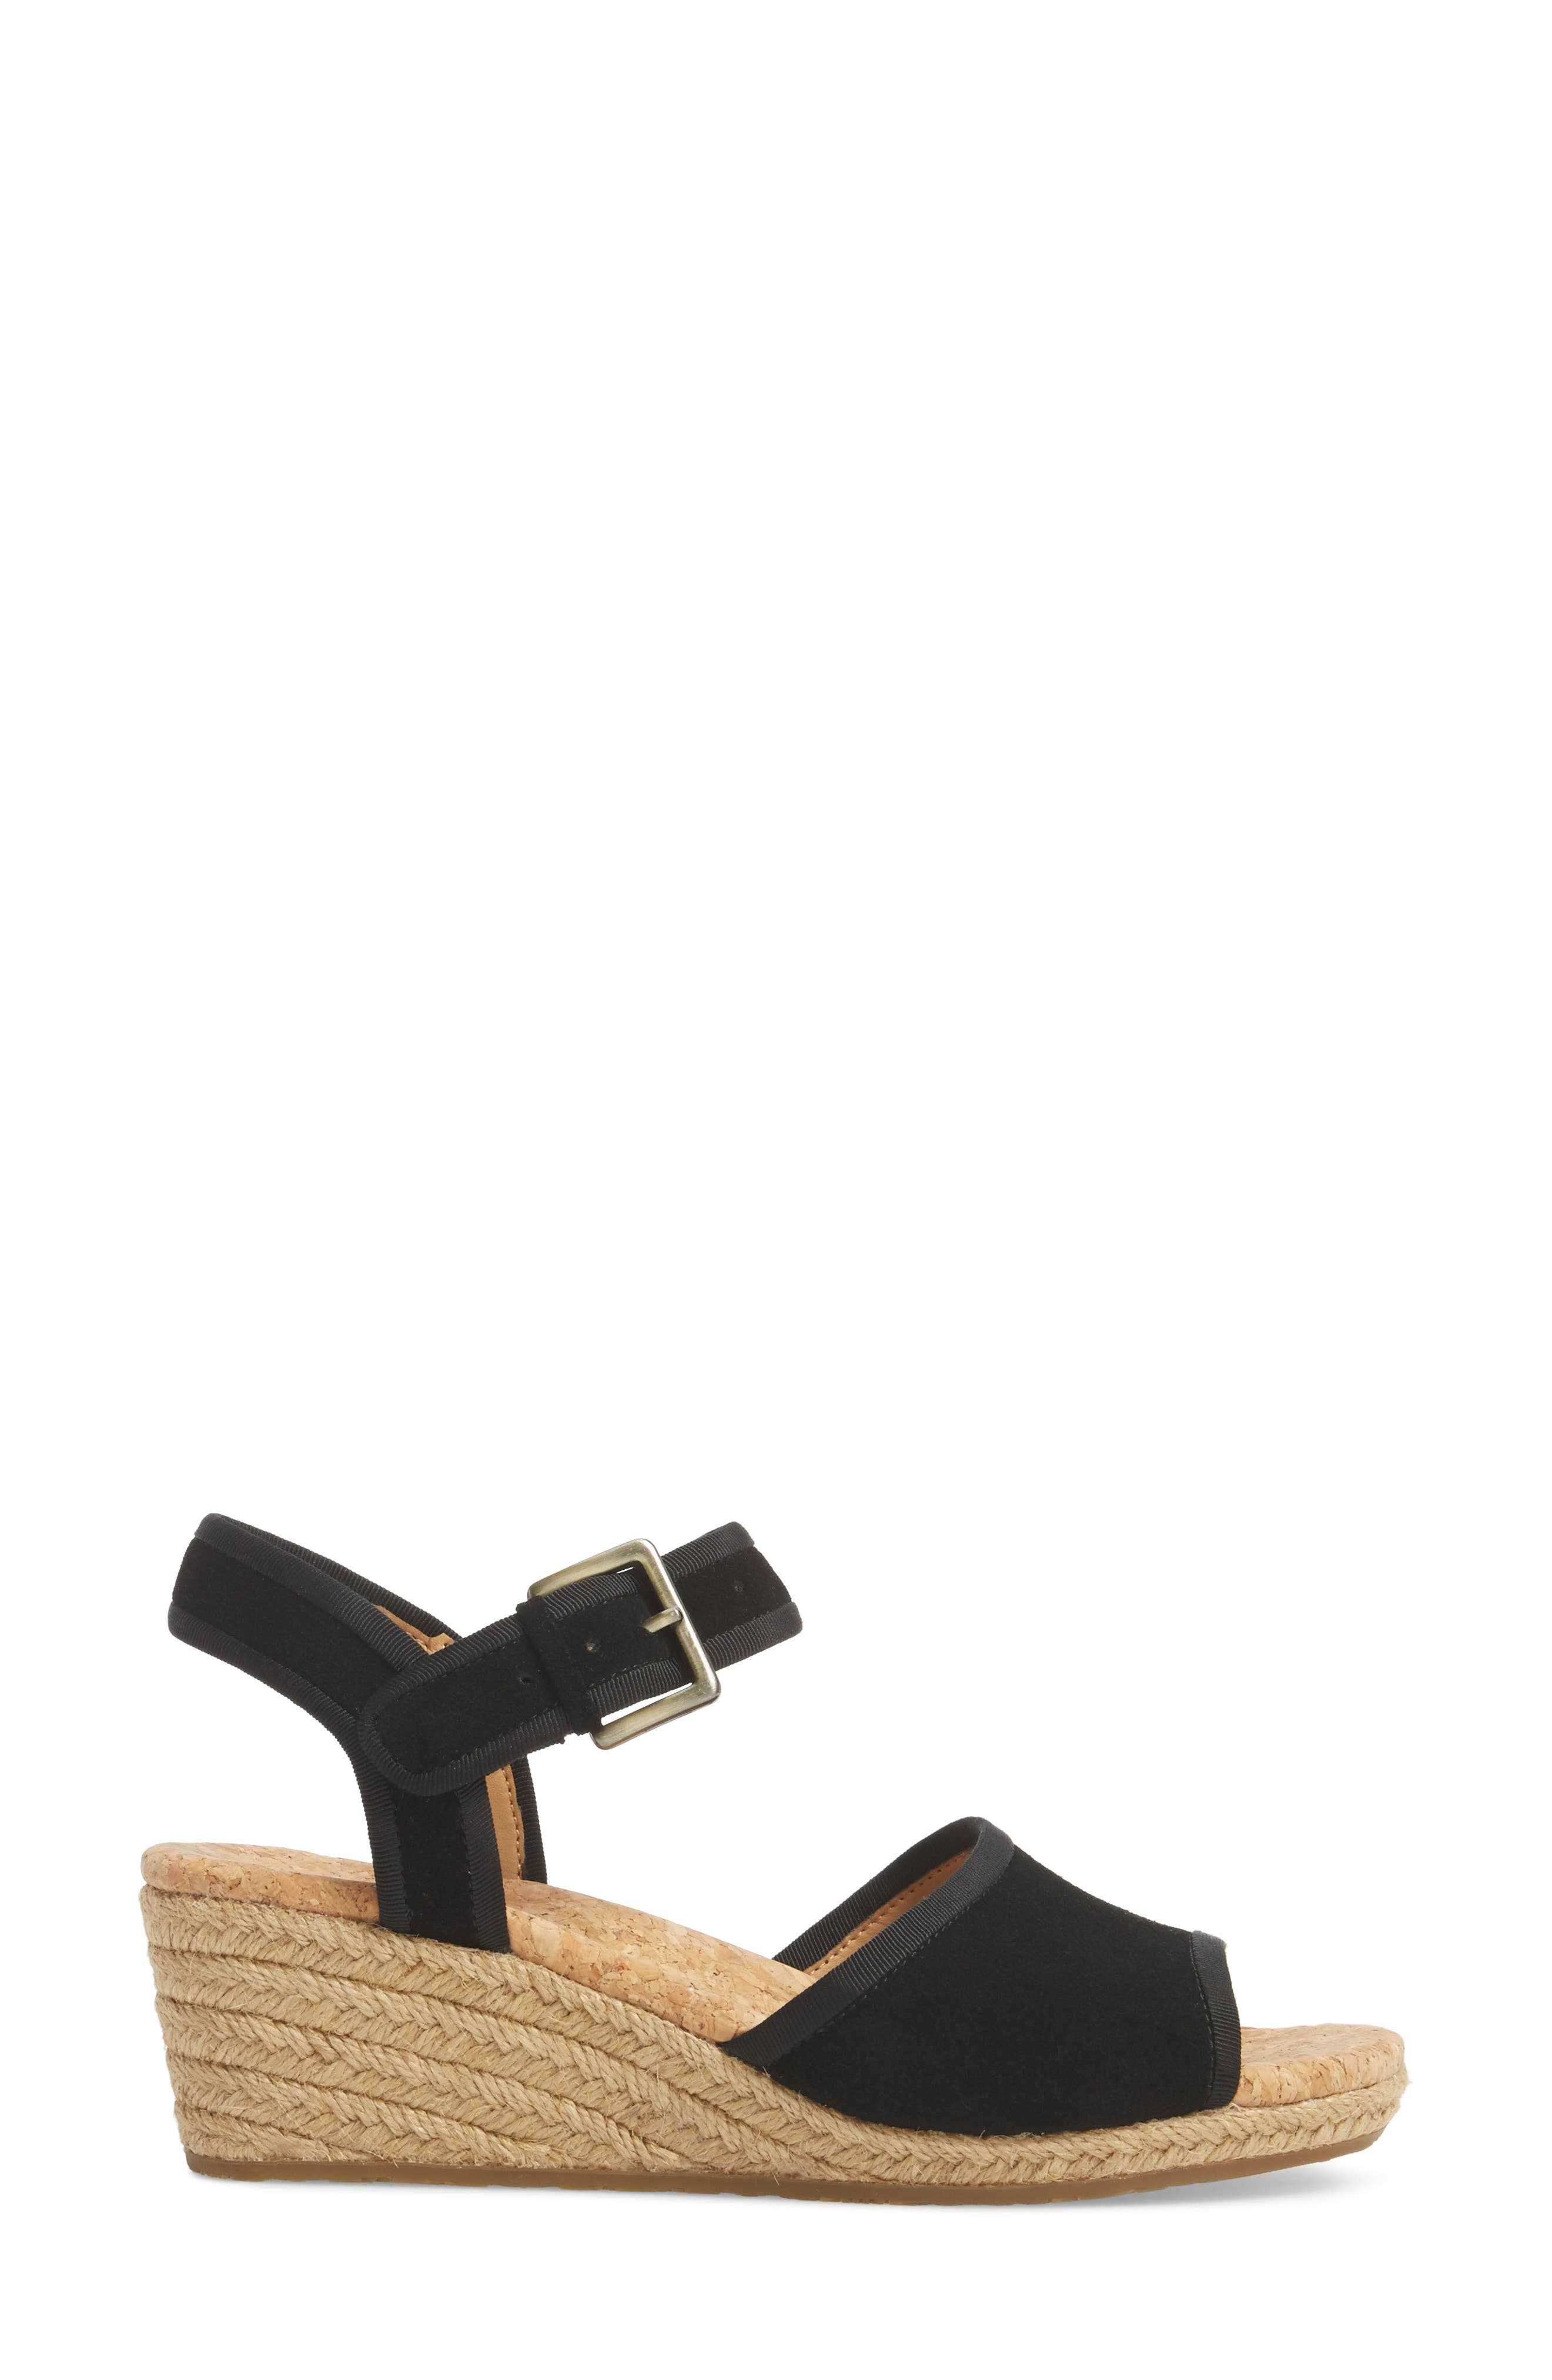 Maybell Wedge Sandal,                             Alternate thumbnail 3, color,                             Black Suede